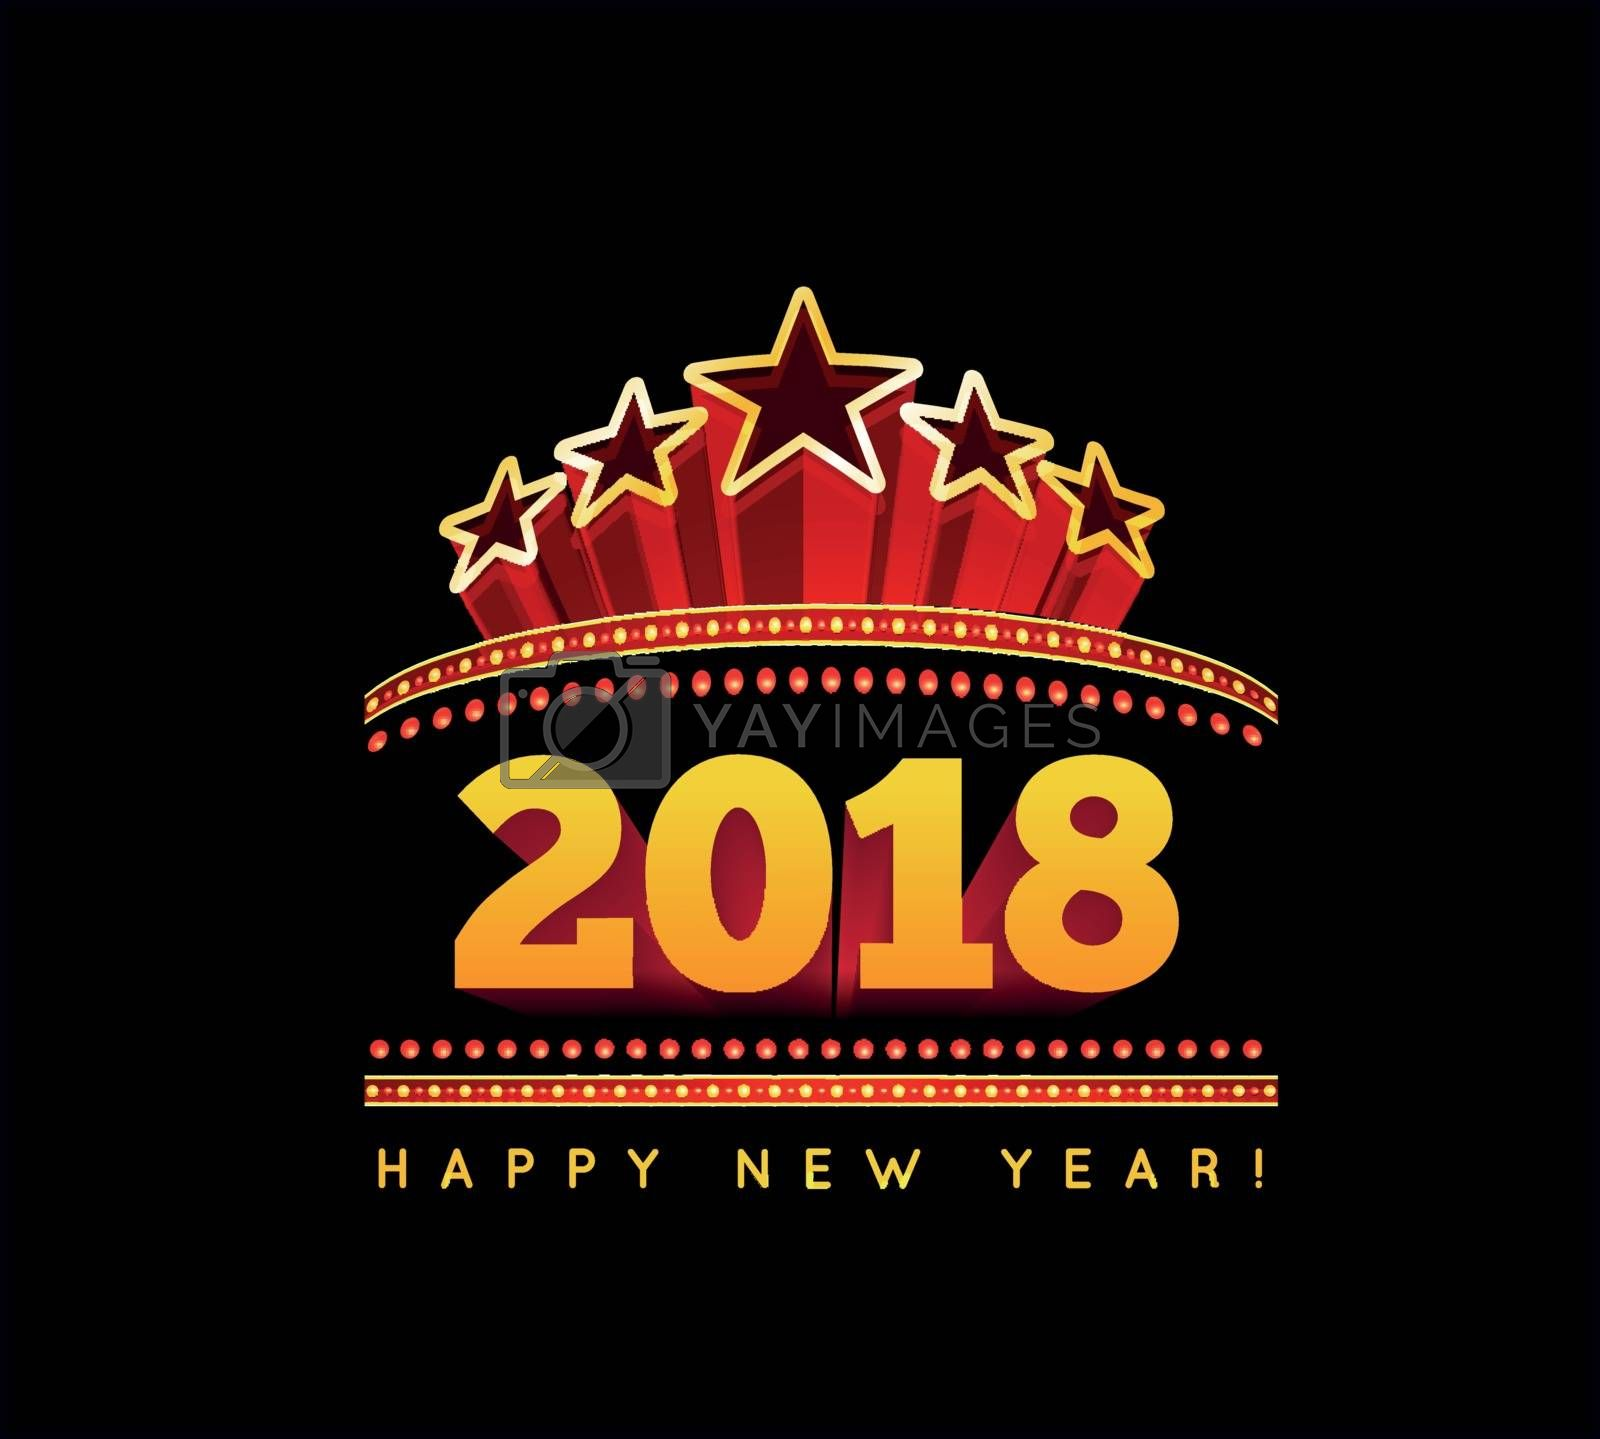 New Year marquee 2018. Vector illustration on black